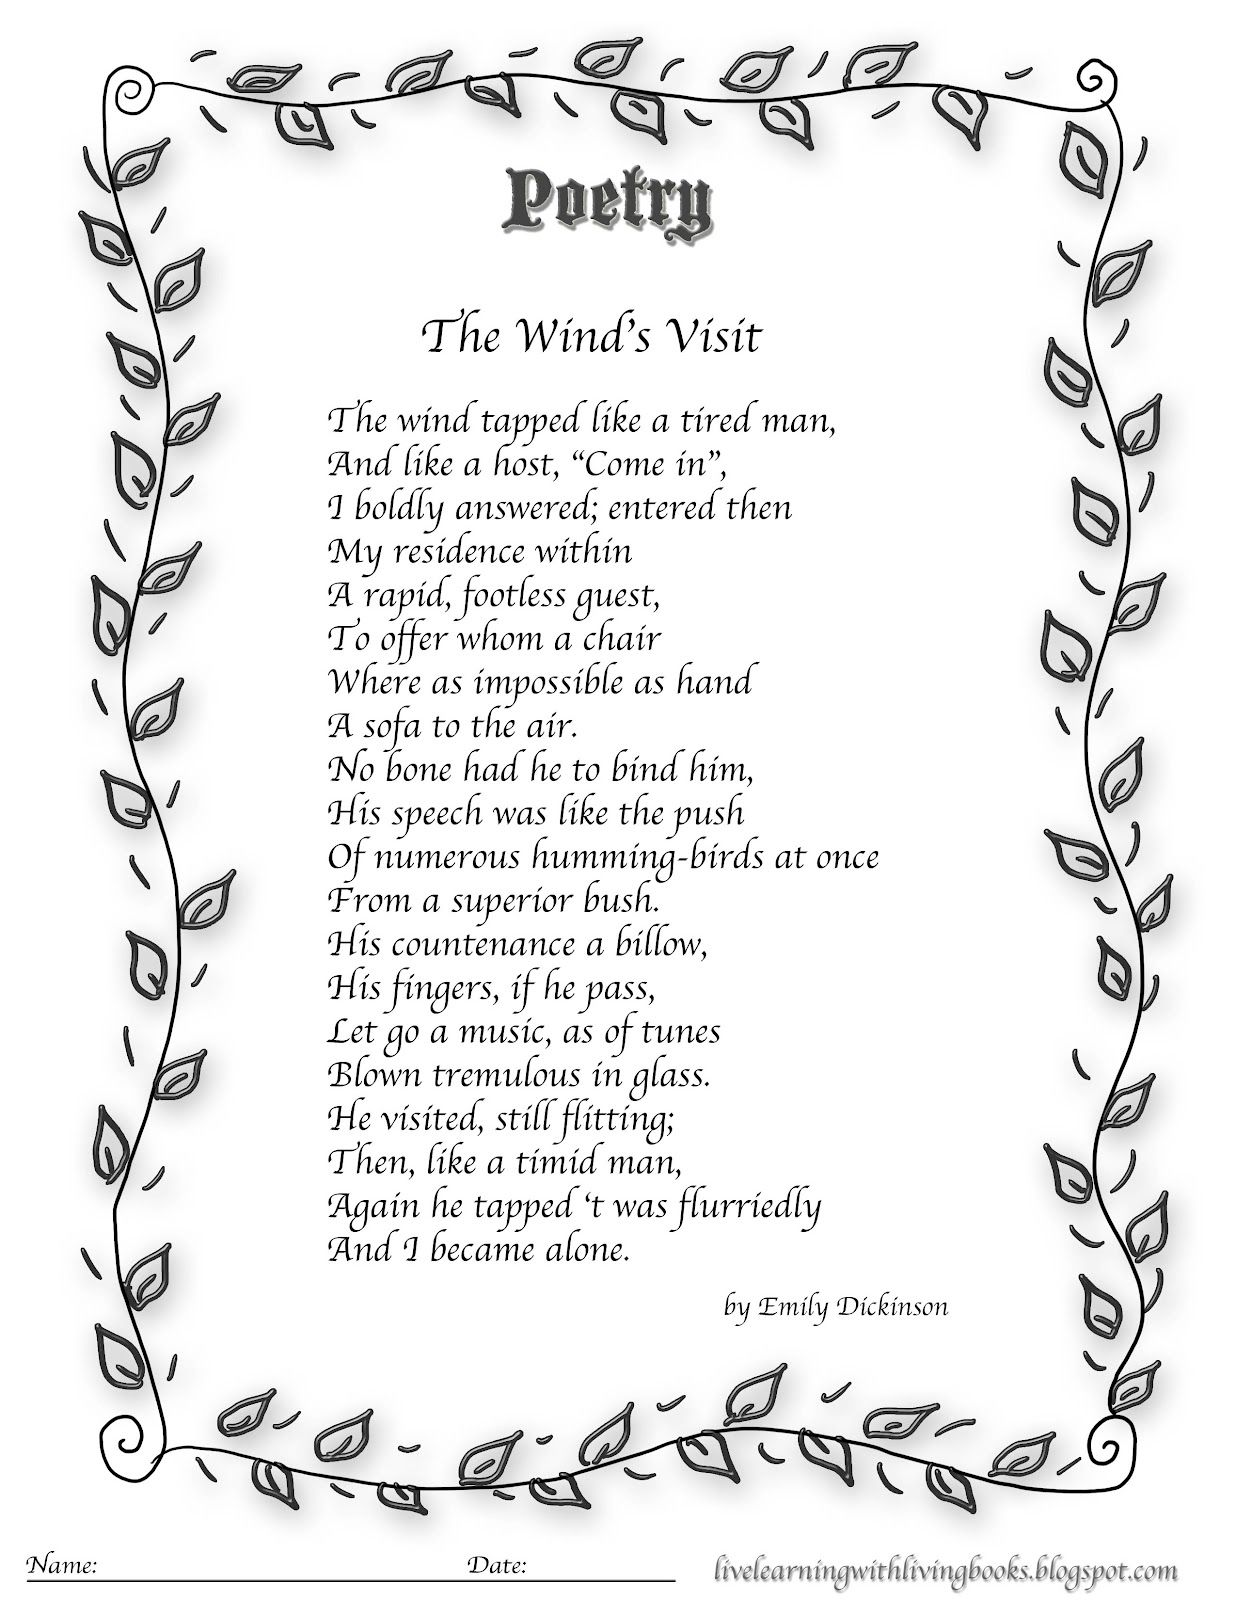 emily dickinson essays best images about poetry emily dickinson  best images about poetry emily dickinson the 17 best images about poetry emily dickinson the secret